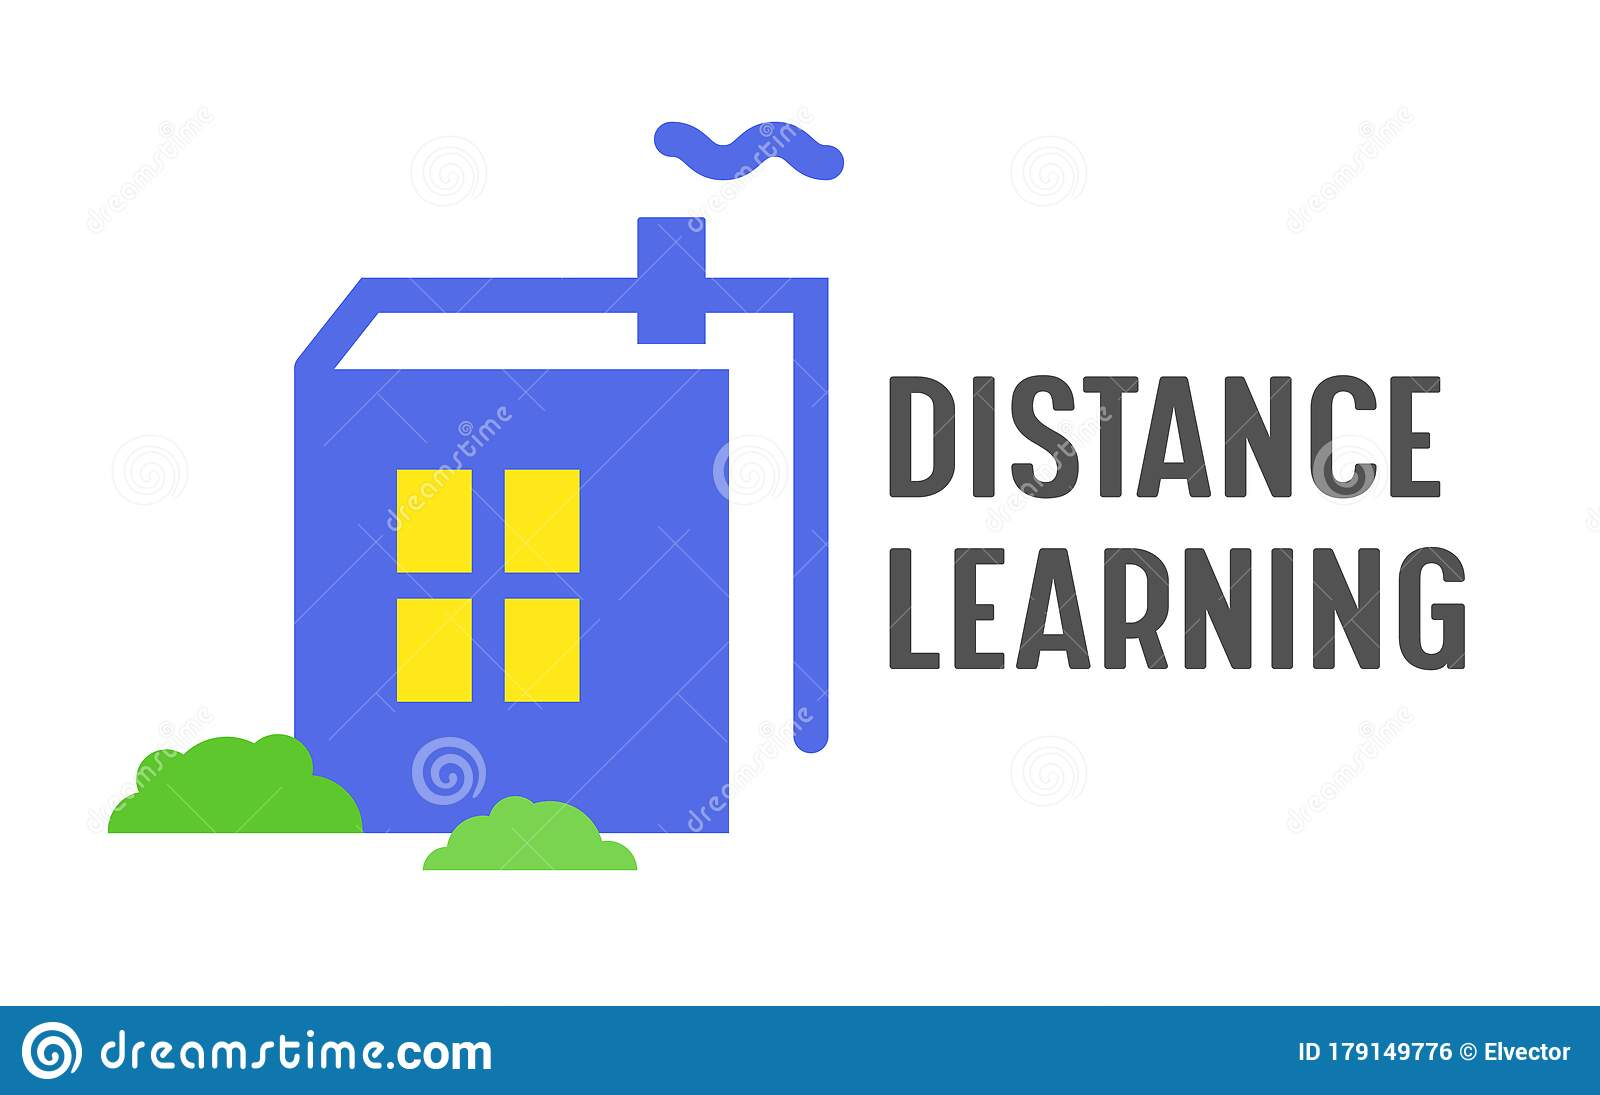 Distance Learning Banner Online Education Courses Homeschooling Concept Book In Shape Of House With Glowing Window Stock Vector Illustration Of Glowing Badge 179149776